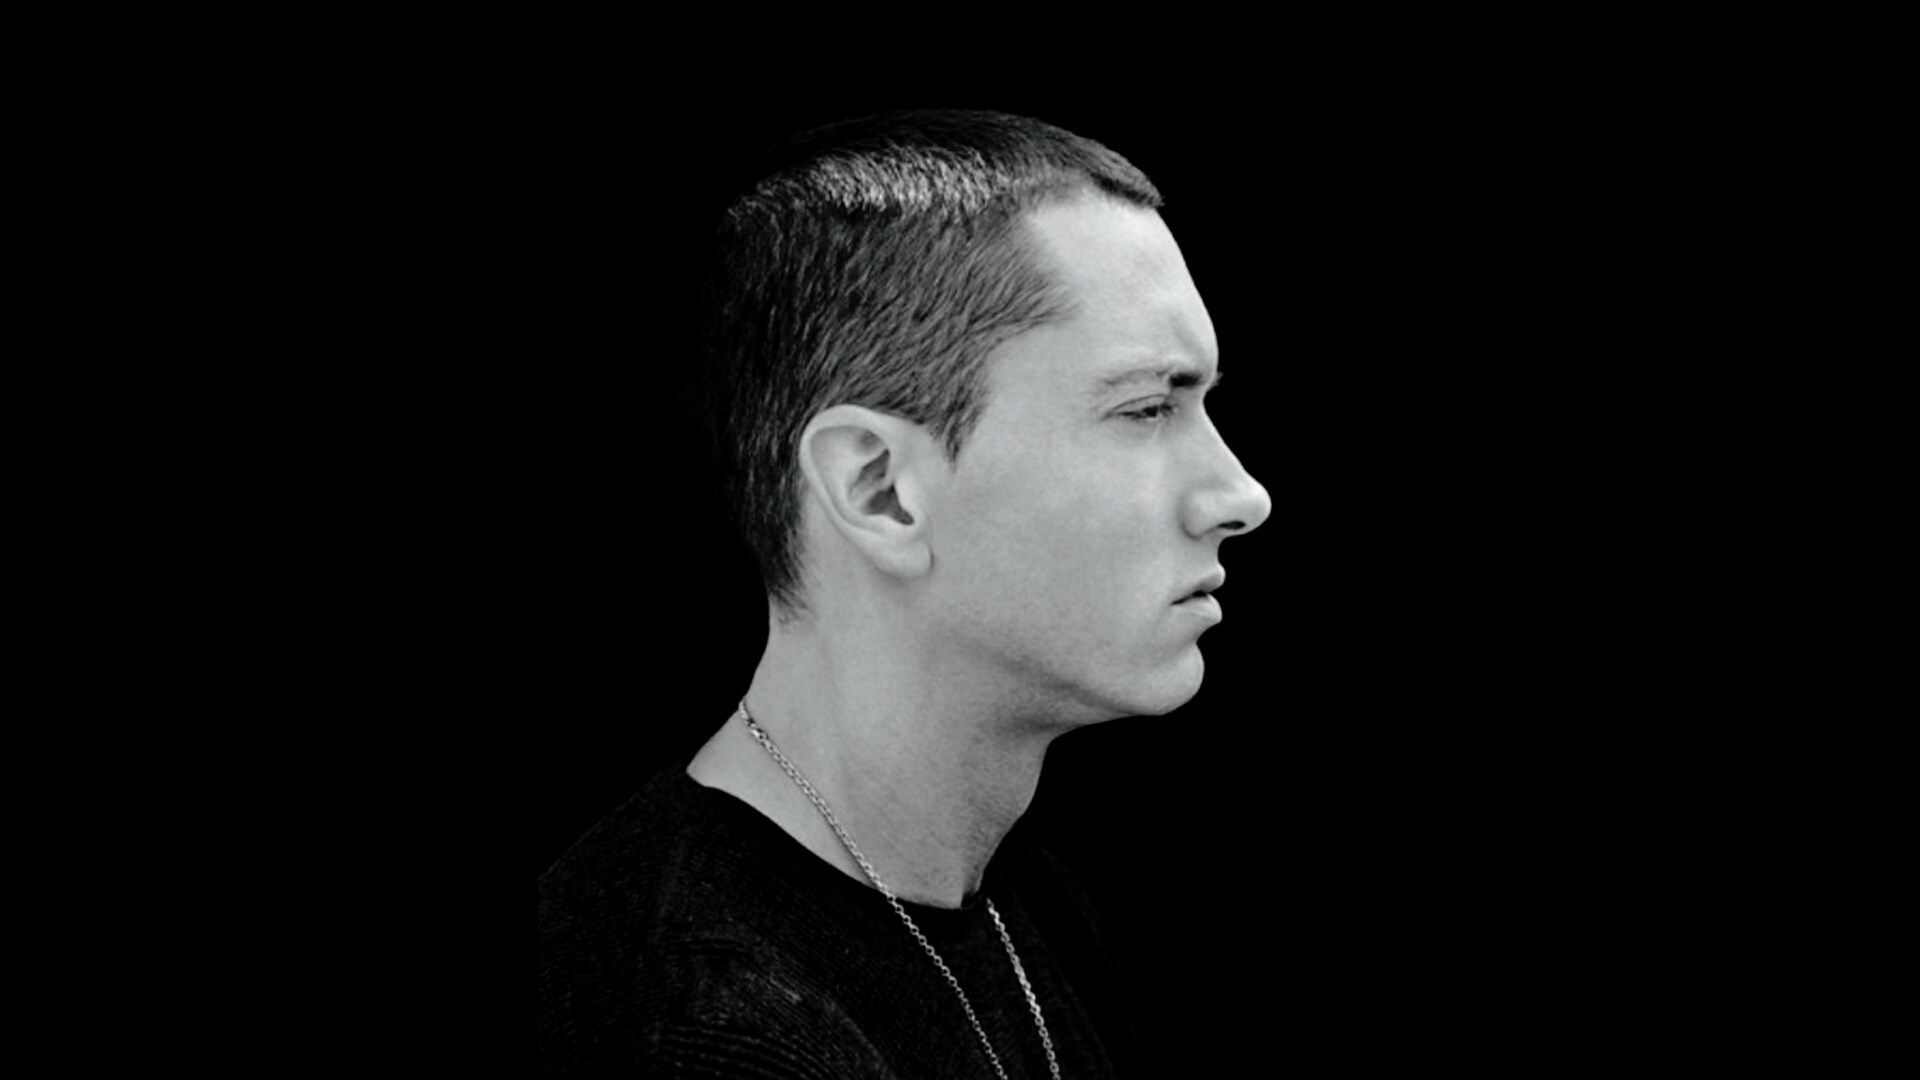 1920x1080 high resolution wallpapers widescreen eminem